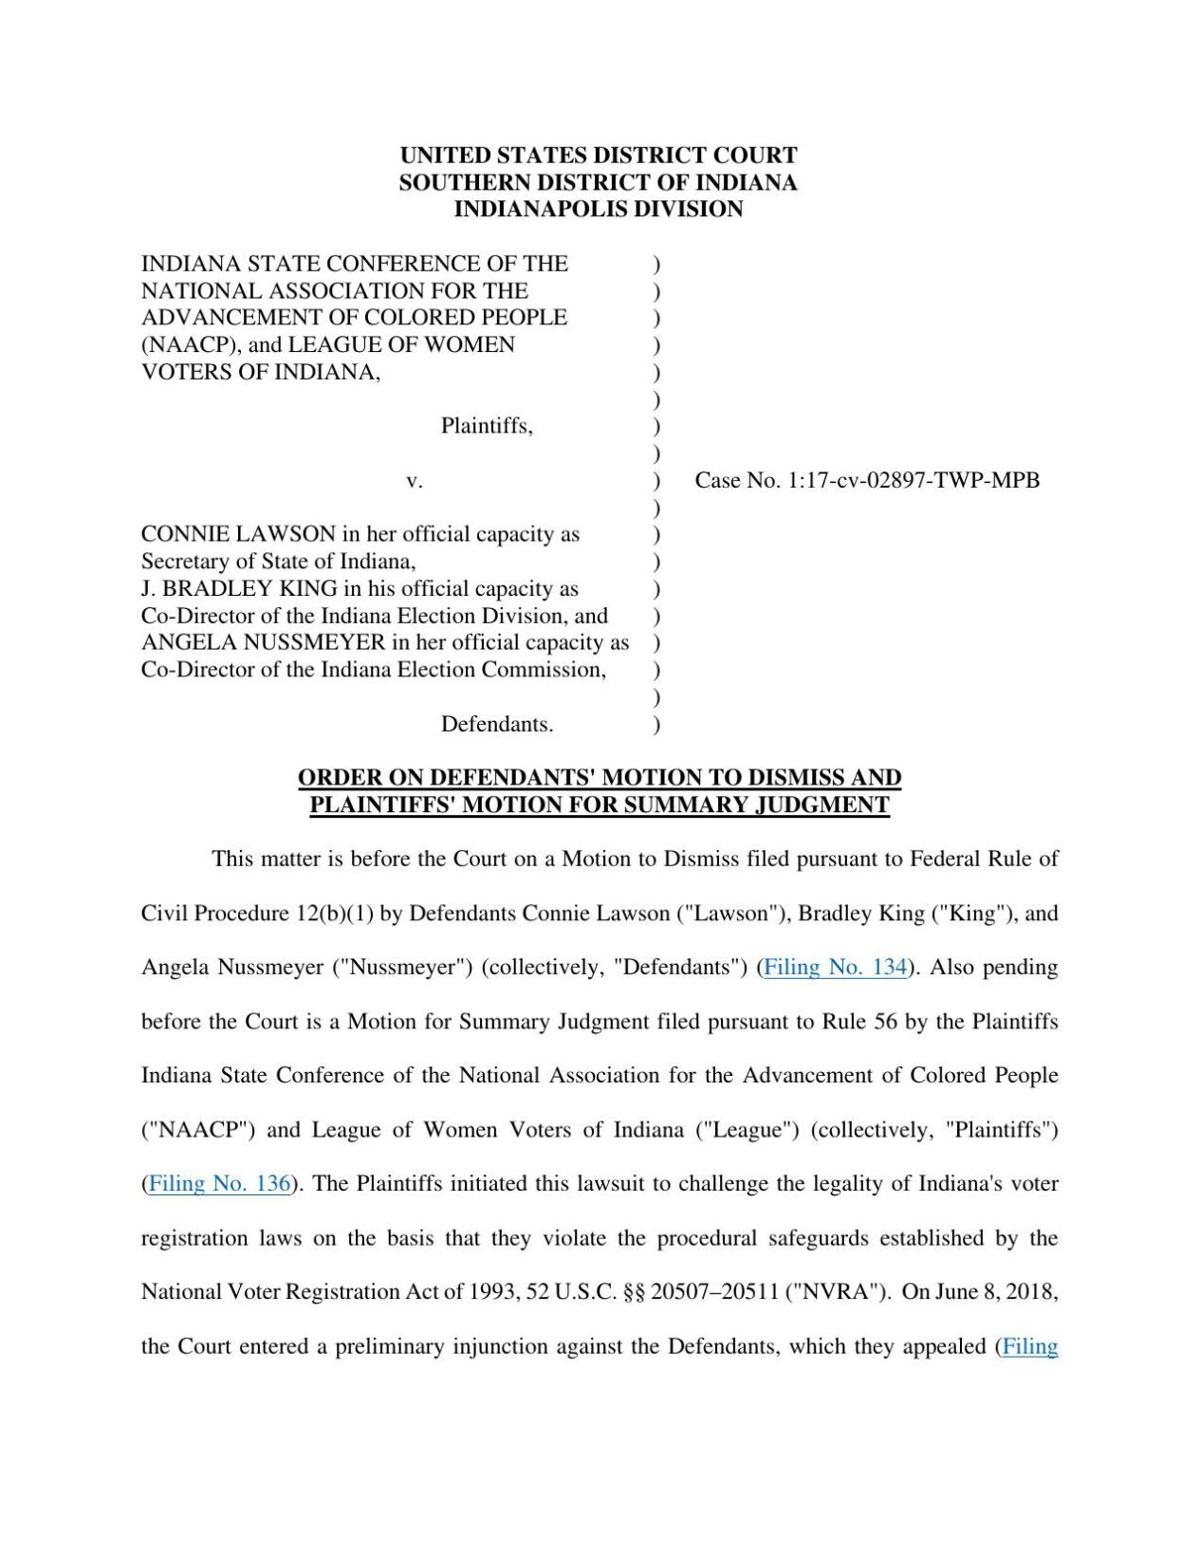 Indiana NAACP v. Lawson ruling of U.S. District Court